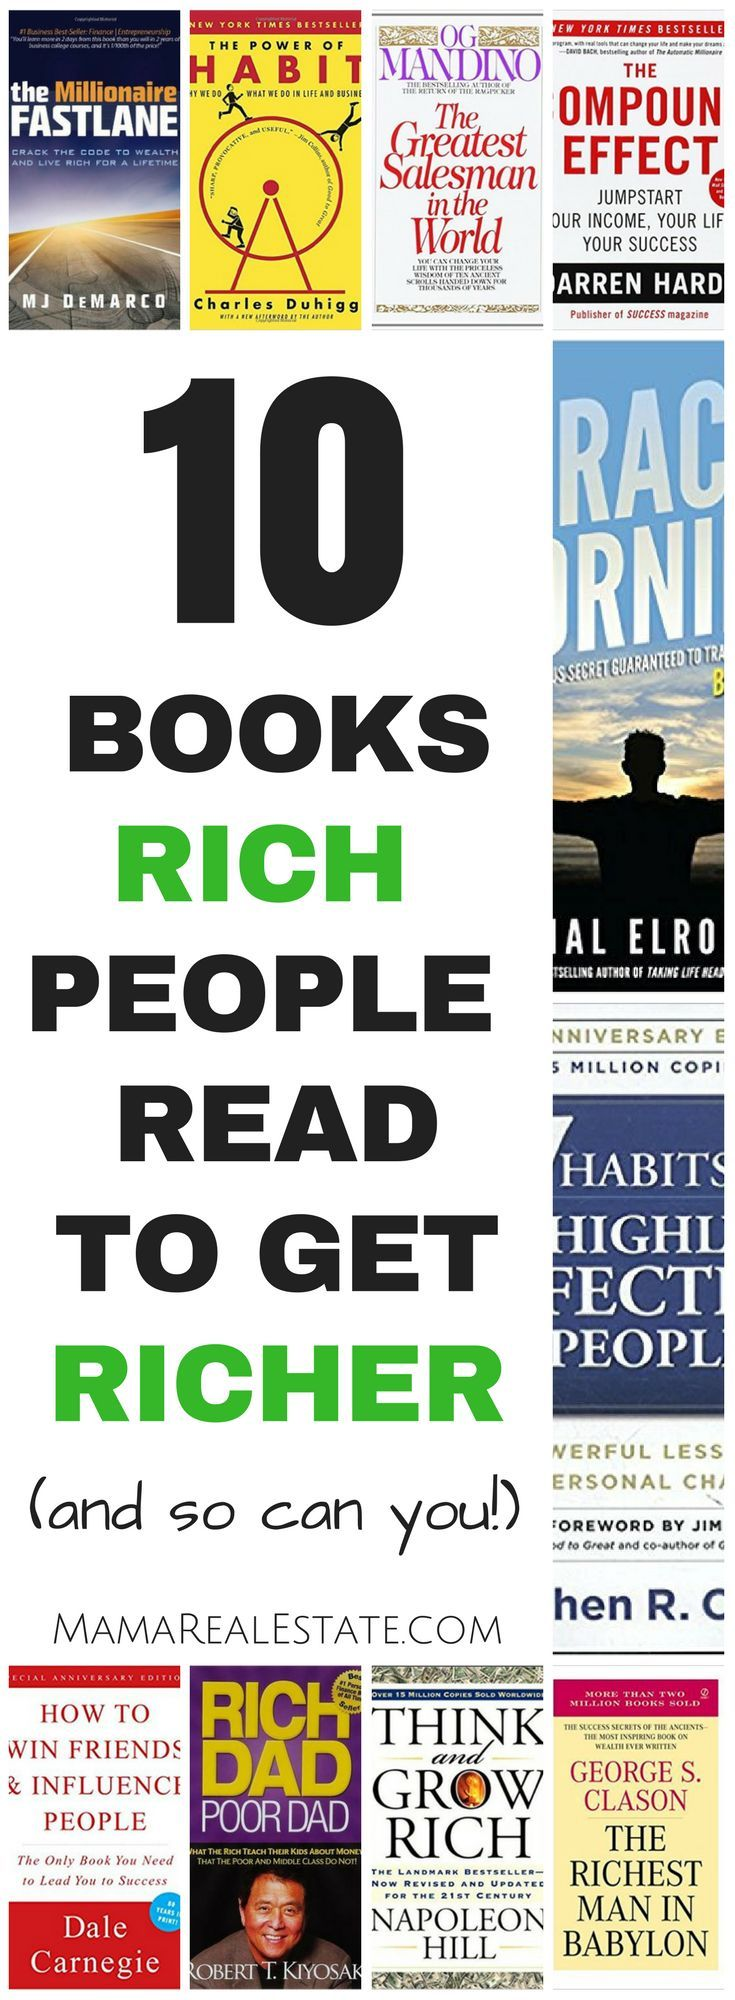 Top Best Books For Men What Successful Businessmen And - 10 of the most successful entrepreneurs reveal their secret morning rituals